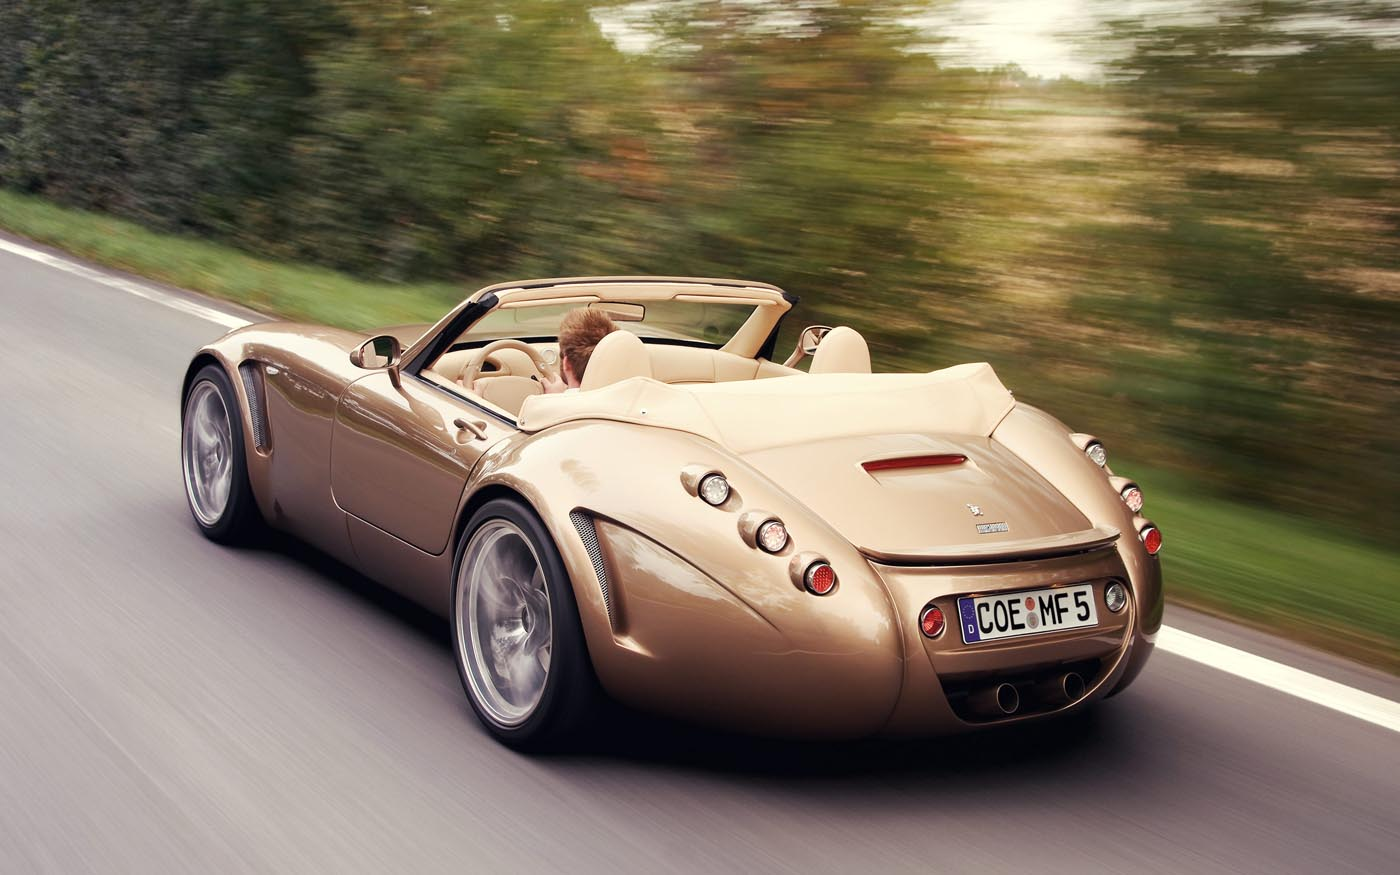 Wiesmann Mf Roadster on Fiat V8 Engine